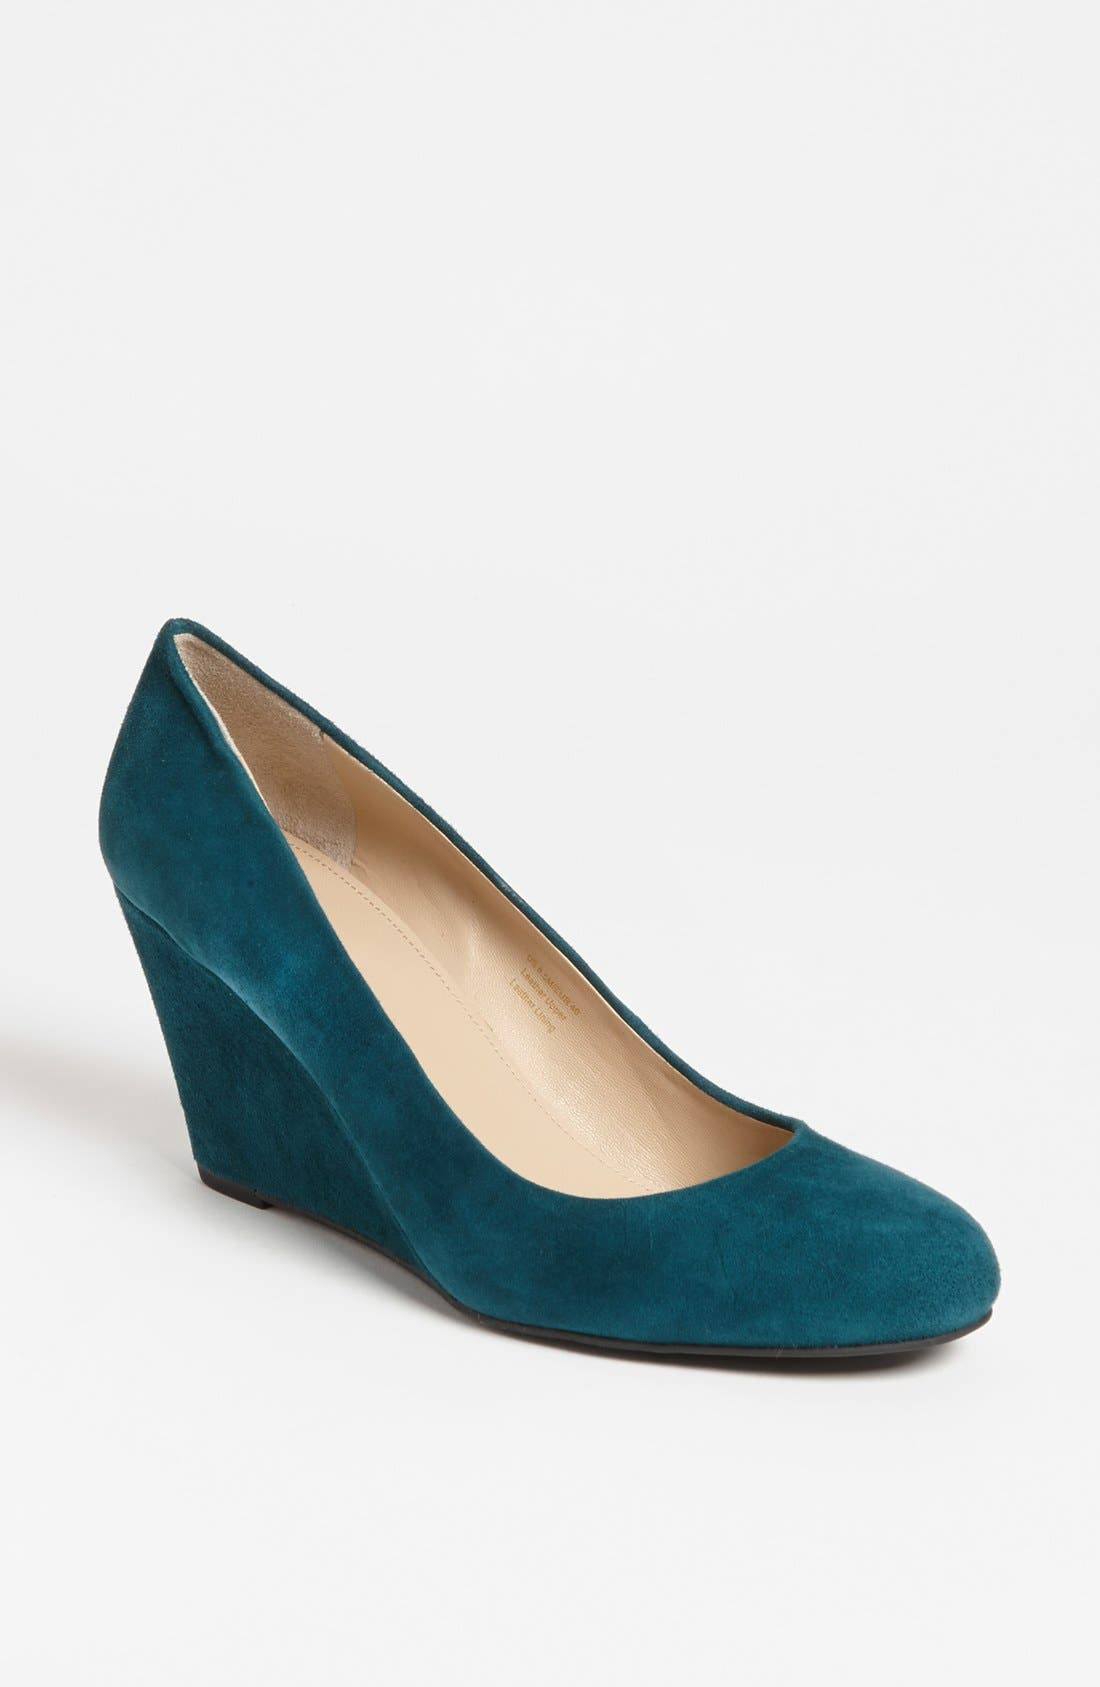 Alternate Image 1 Selected - Via Spiga 'Farley' Wedge Pump